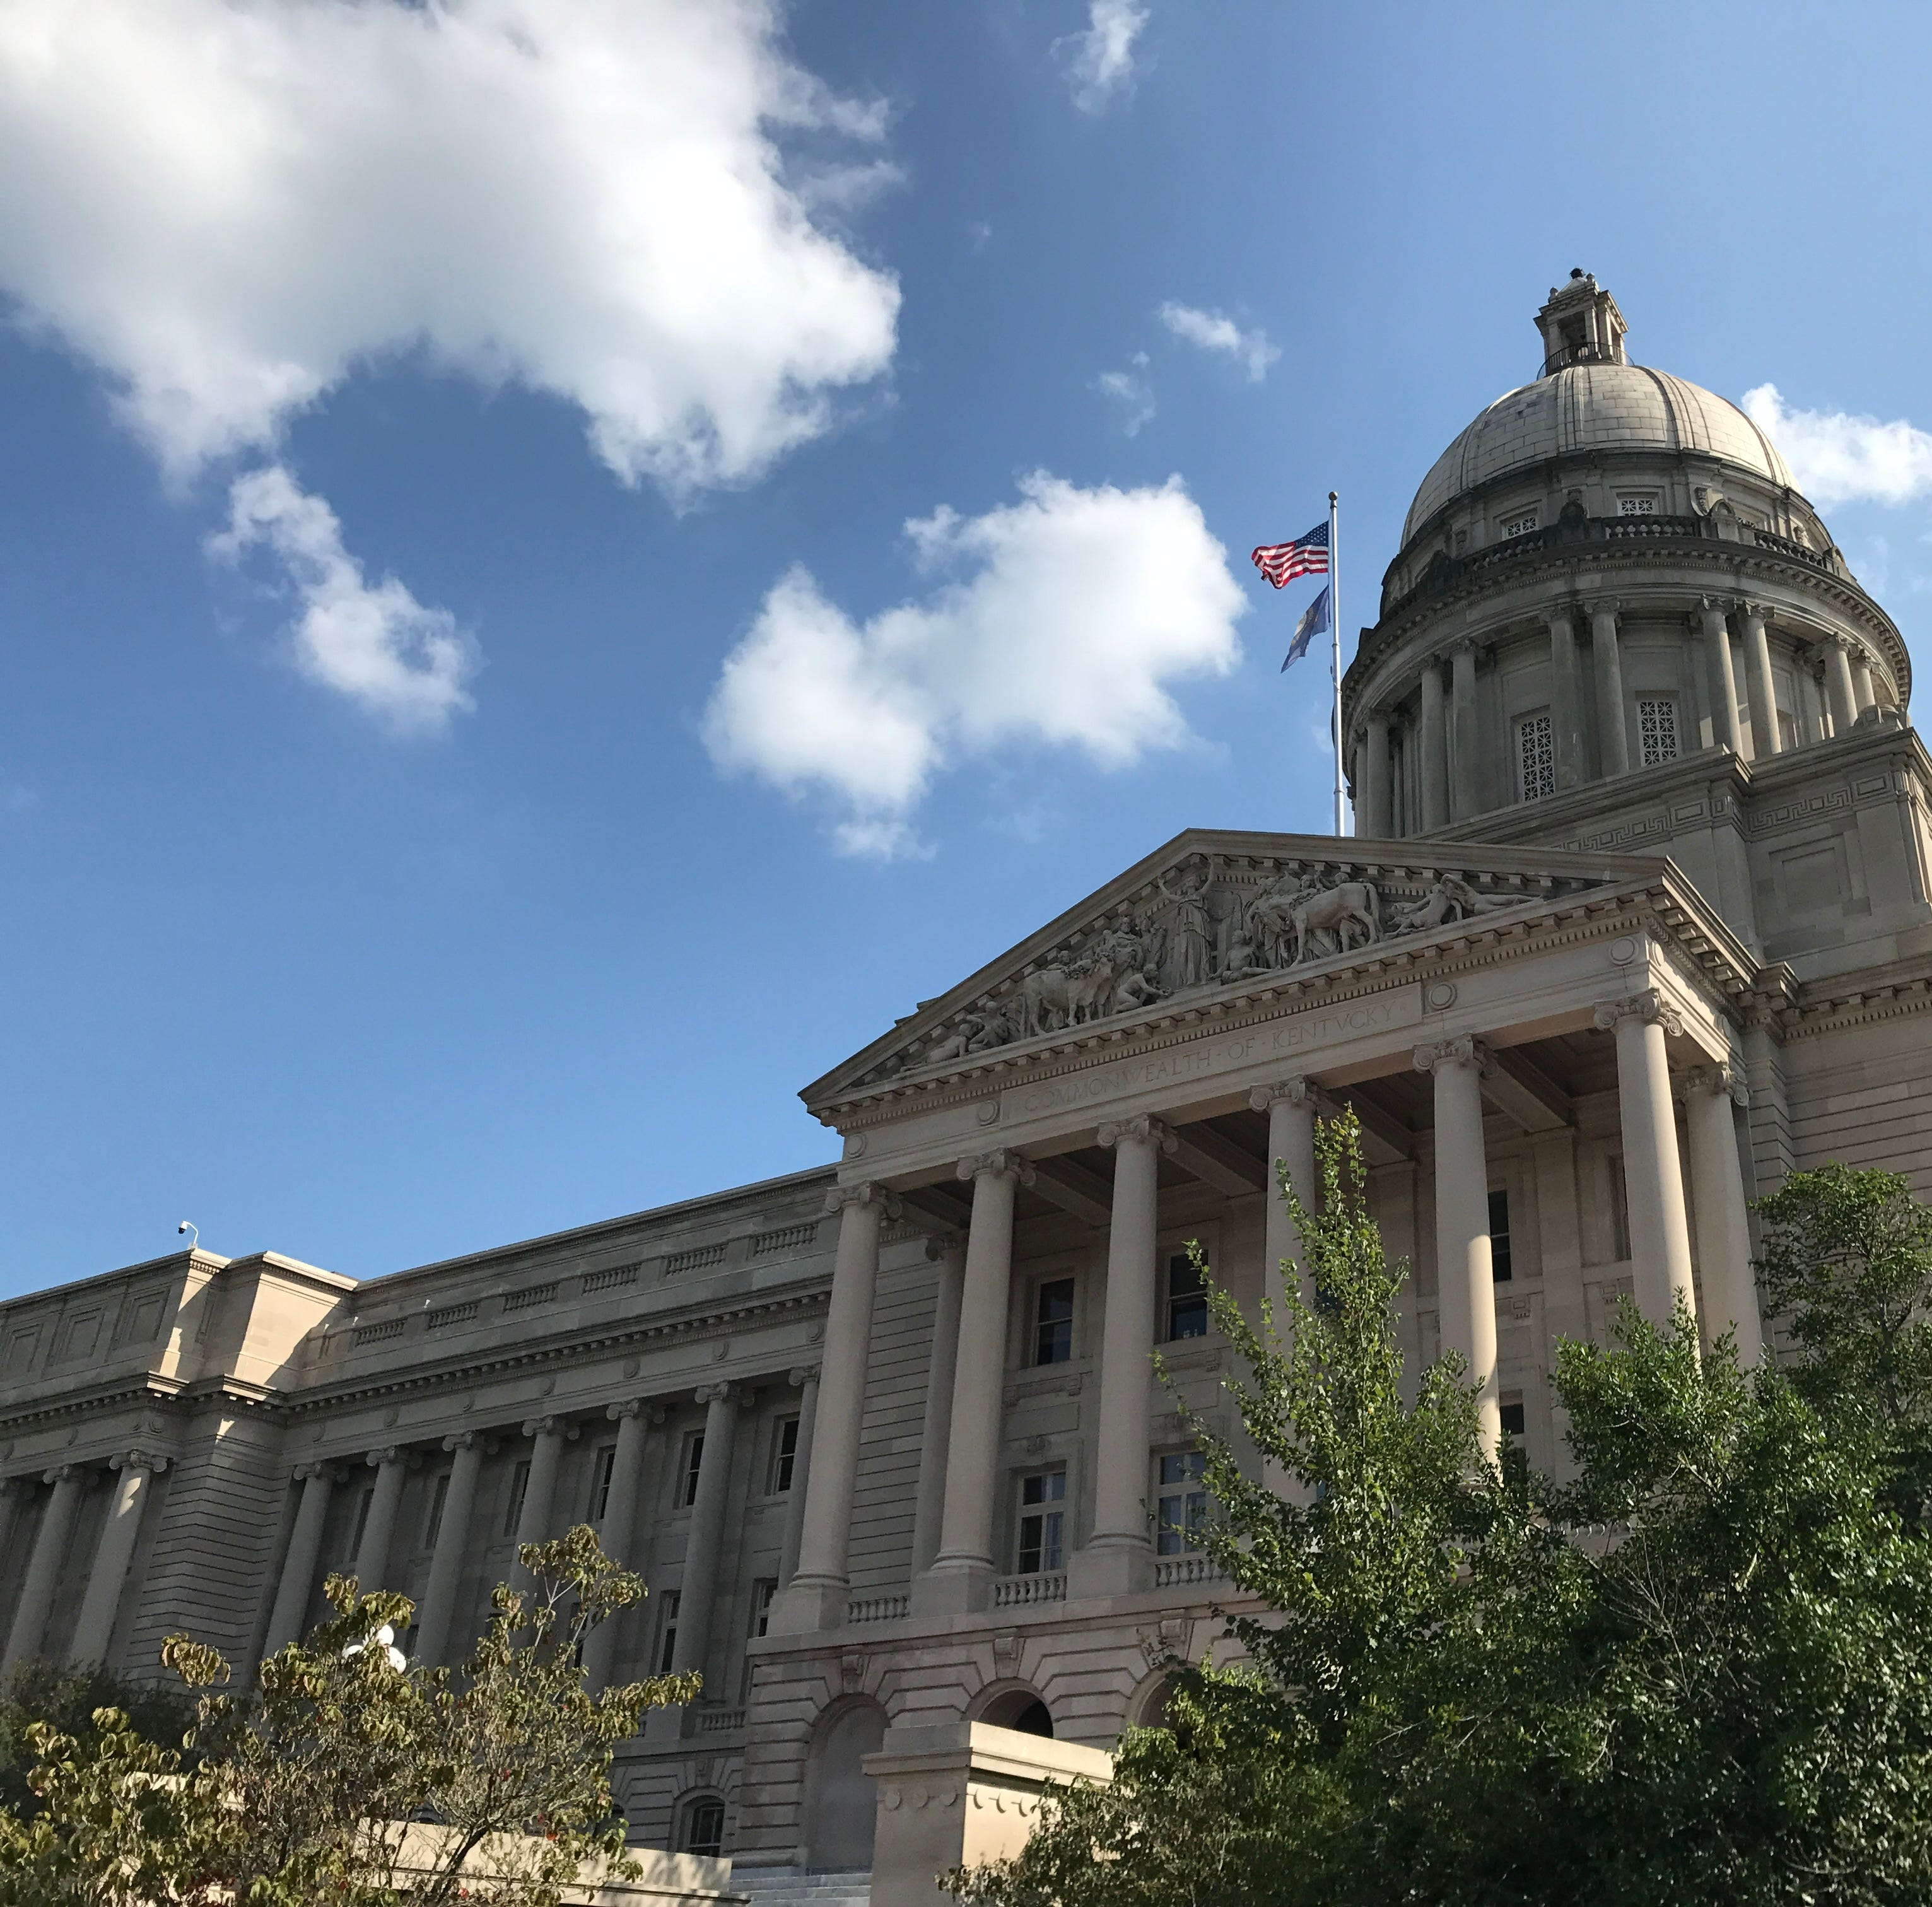 Kentucky GOP sifting through teachers' emails for political misuse